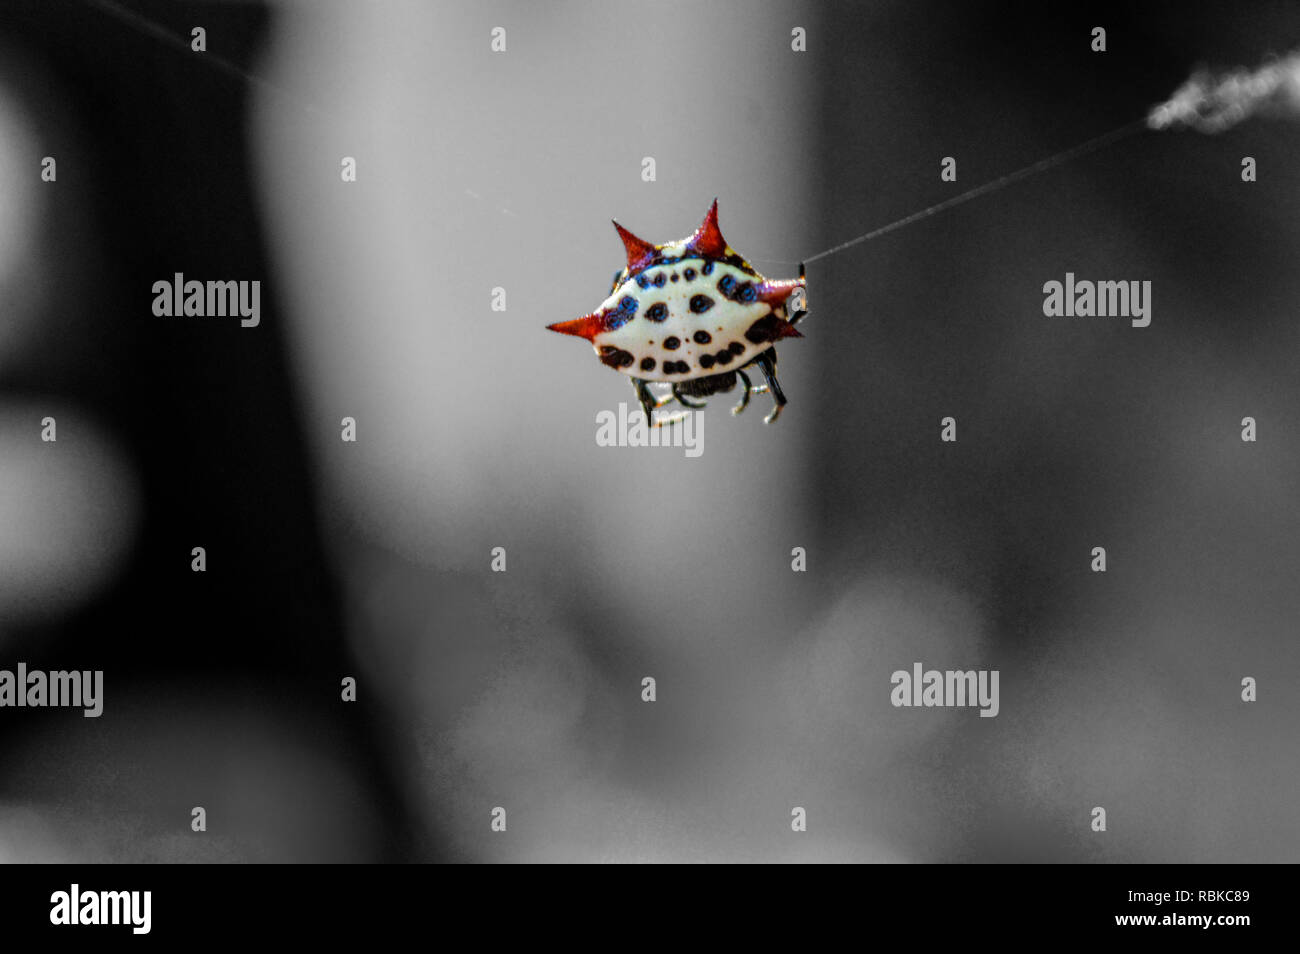 Spinybacked Orbweaver, Gasteracantha cancriformis, Spider with a smiling face on its back - Stock Image